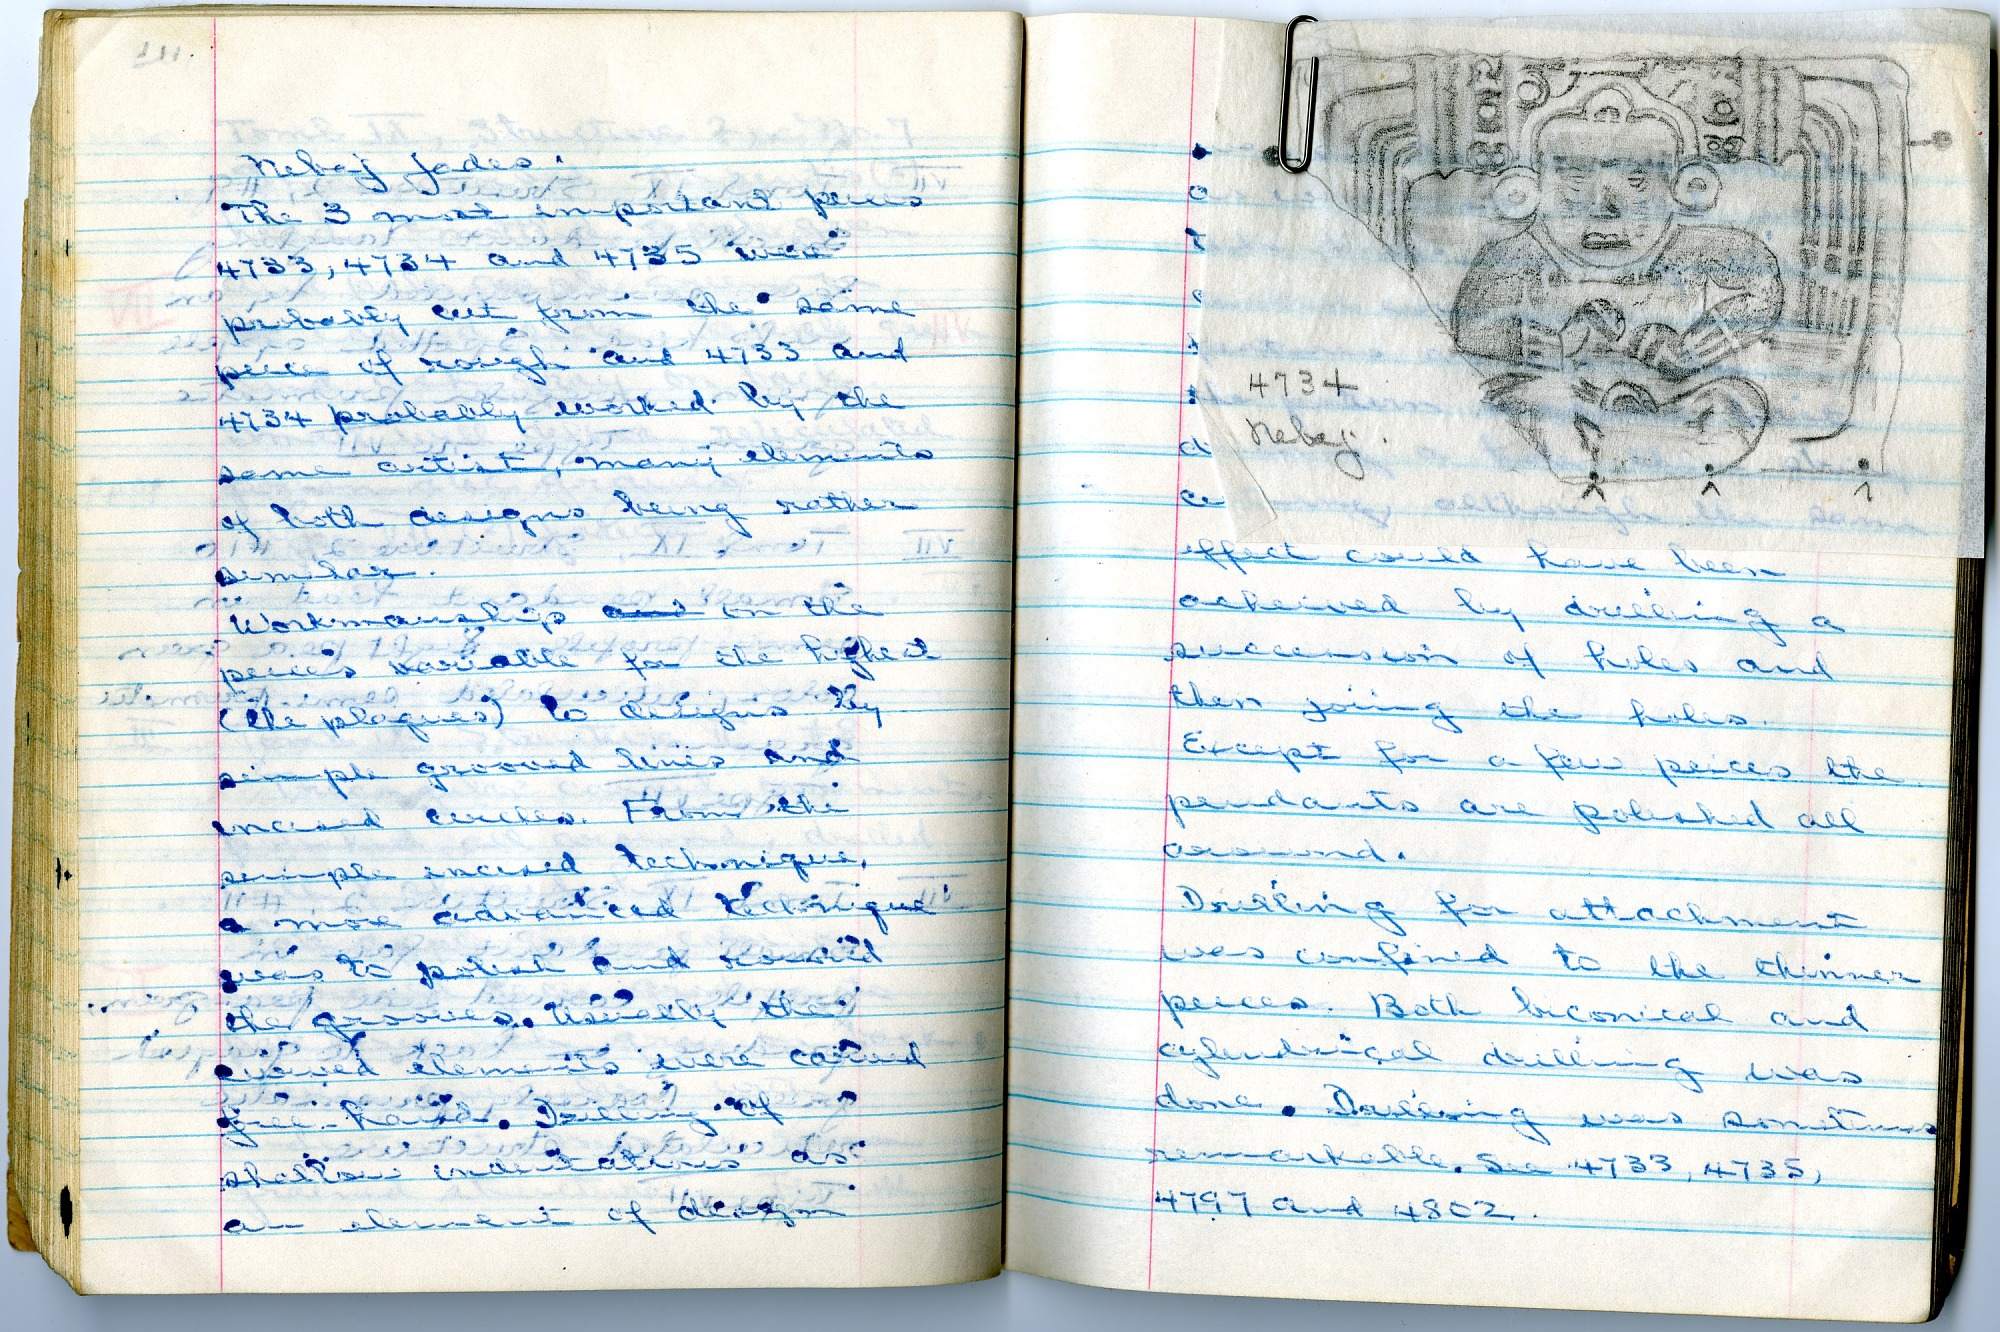 Two Notebook Pages from Foshag's San Agustin Acasaguastlan Field Notebook